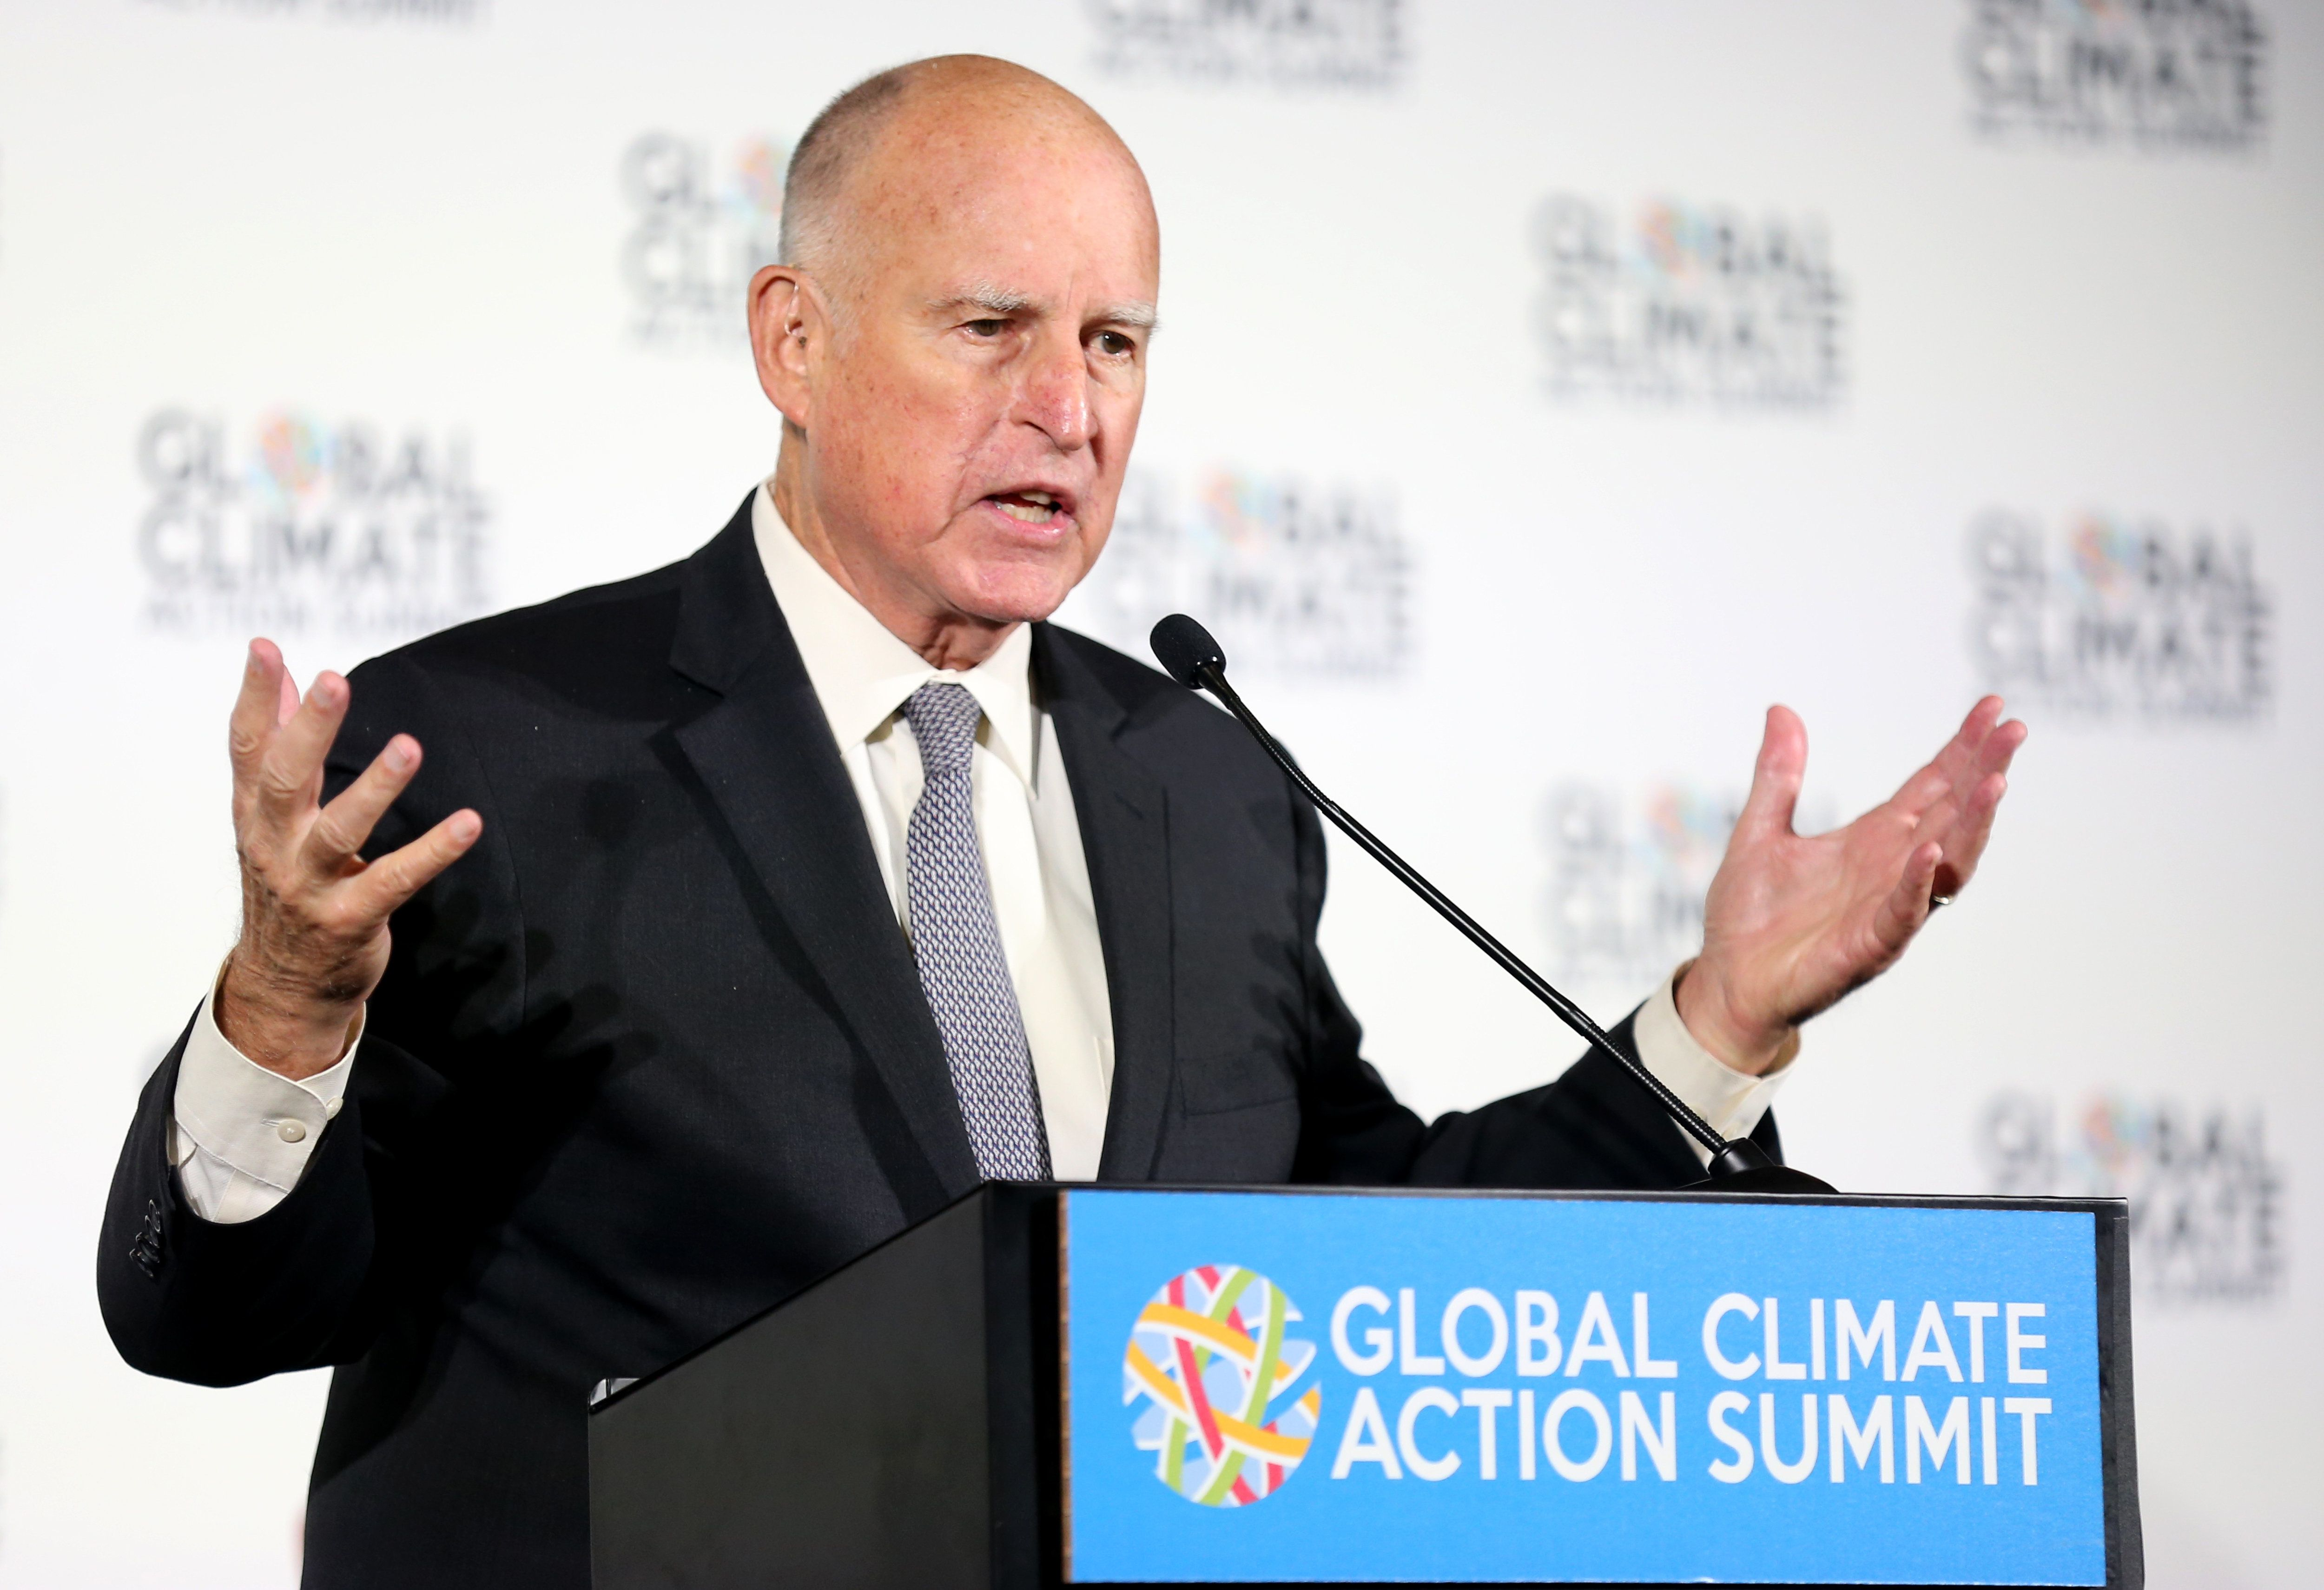 SAN FRANCISCO, CA - SEPTEMBER 13: California's Governor Jerry Brown speaks at a news conference held at the Global Climate Action Summit in San Francisco, Calif., on Thursday, Sept. 13, 2018. Brown joined Washington's Governor Jay Inslee, Hawaii's Governor David Ige and Connecticut's Governor Dannel Malloy to discuss the U.S. Climate Alliance, a bipartisan coalition of governors focused on decreasing greenhouse gas emissions inline with the goals of the Paris Agreement. (Anda Chu/Digital First Media/The Mercury News via Getty Images)